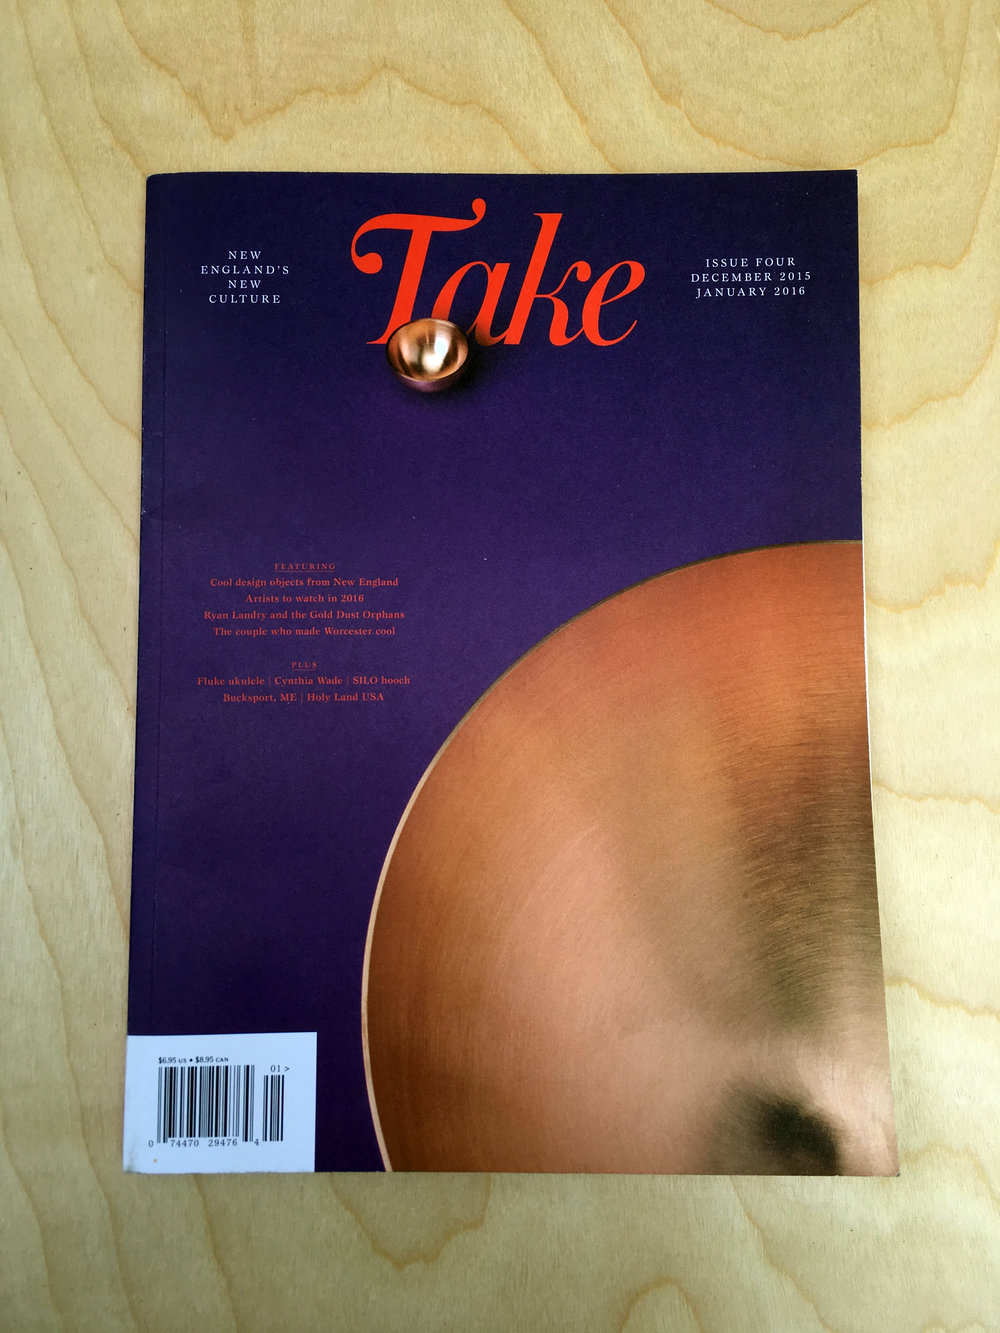 TAKE MAGAZINE DECEMBER 2015/JANUARY 2016